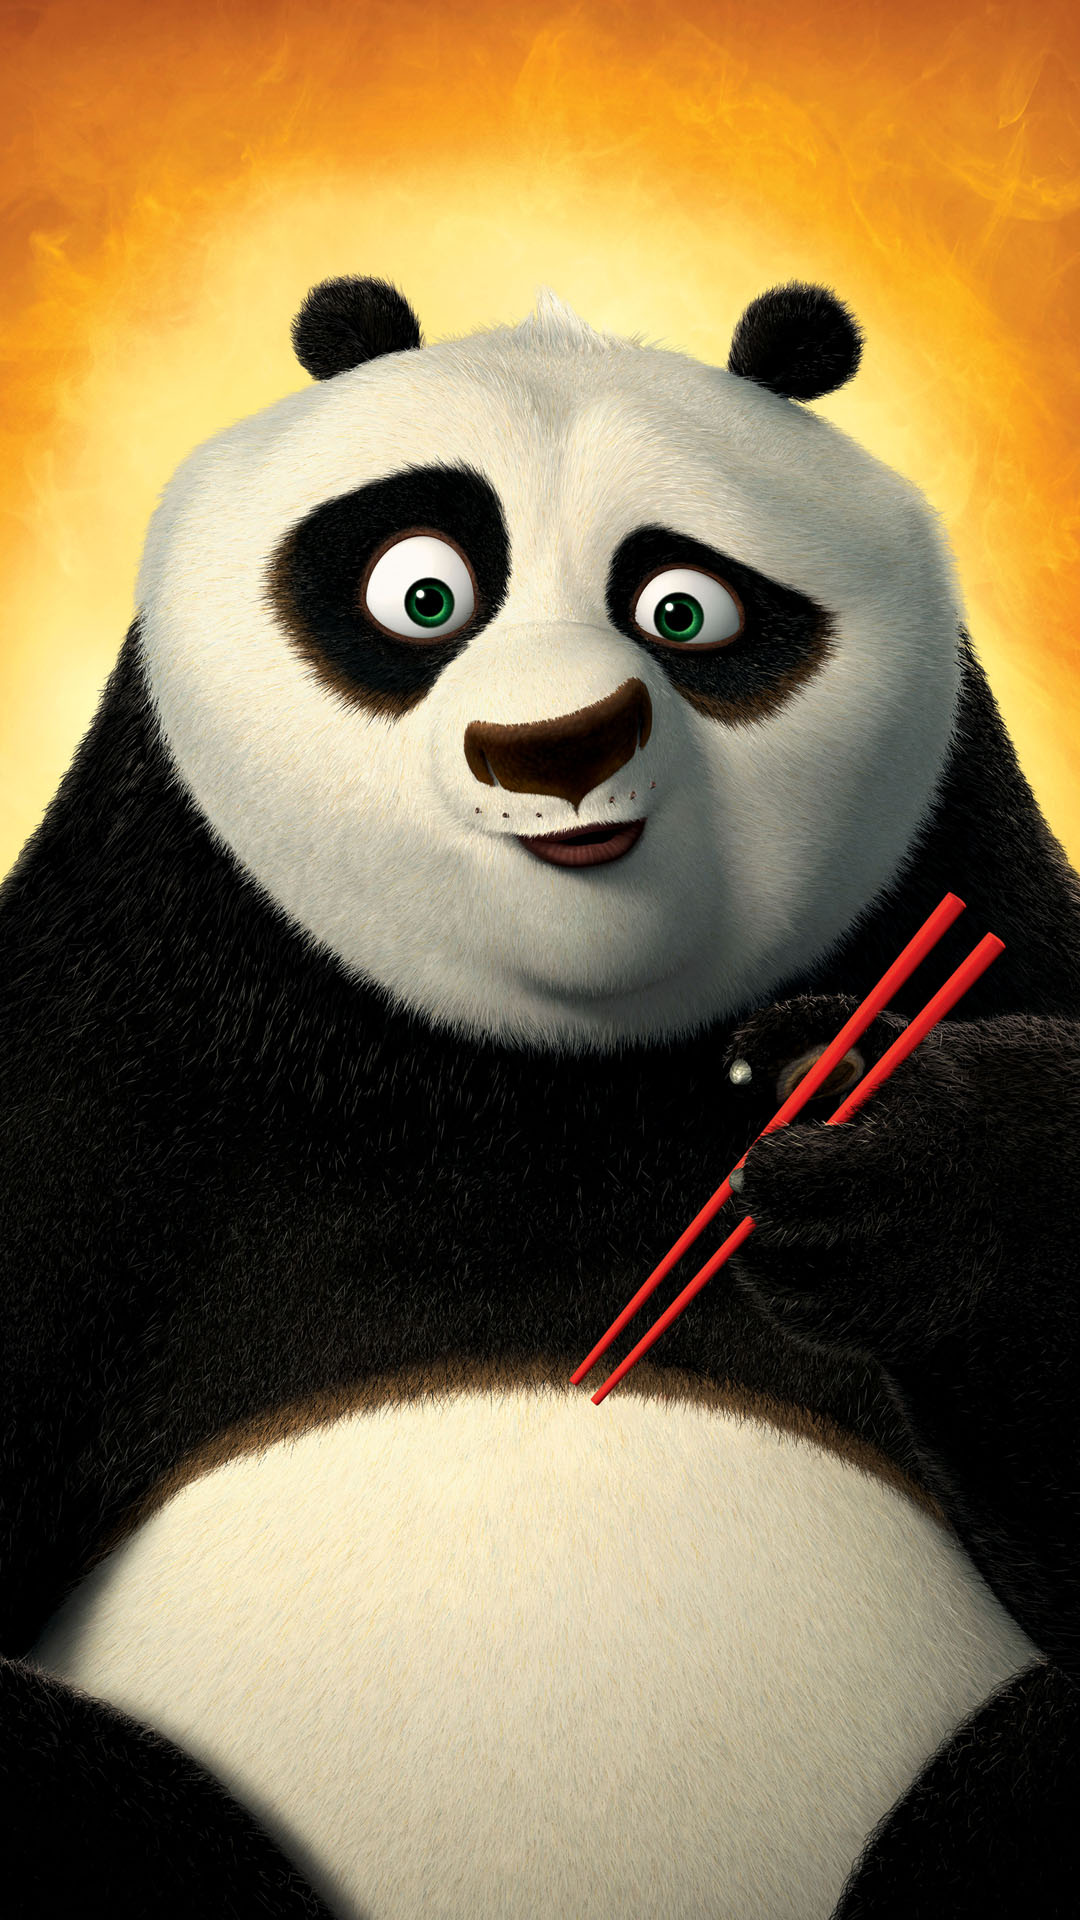 kung fu panda 2 - best htc one wallpapers, free and easy to download